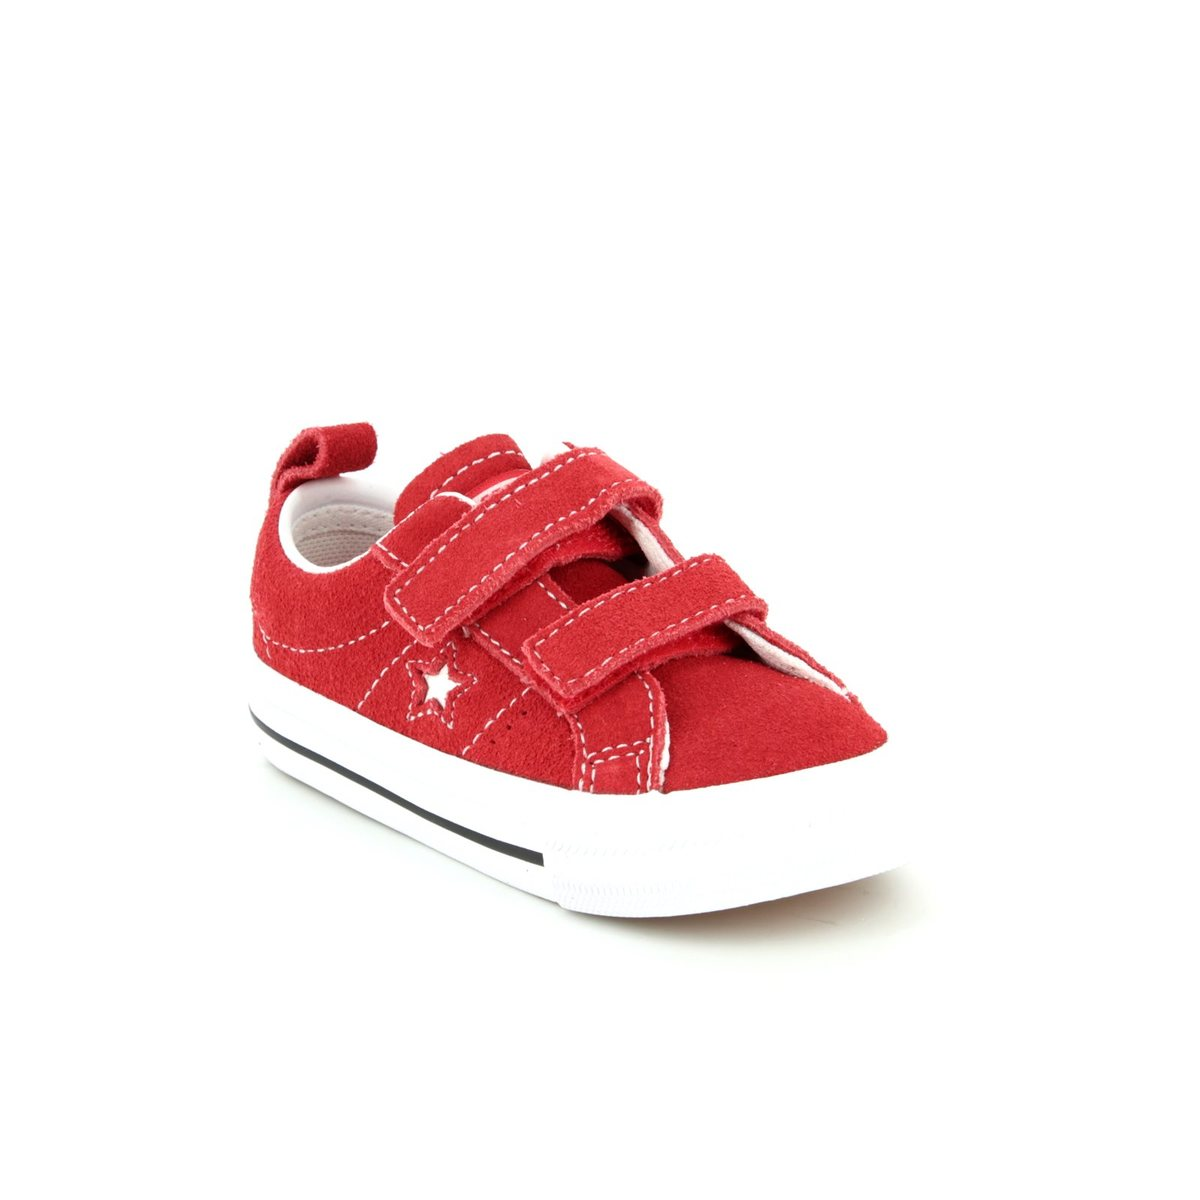 94ca1b787555 Converse Trainers - Red multi - 756133C 600 One Star 2V OX Velcro